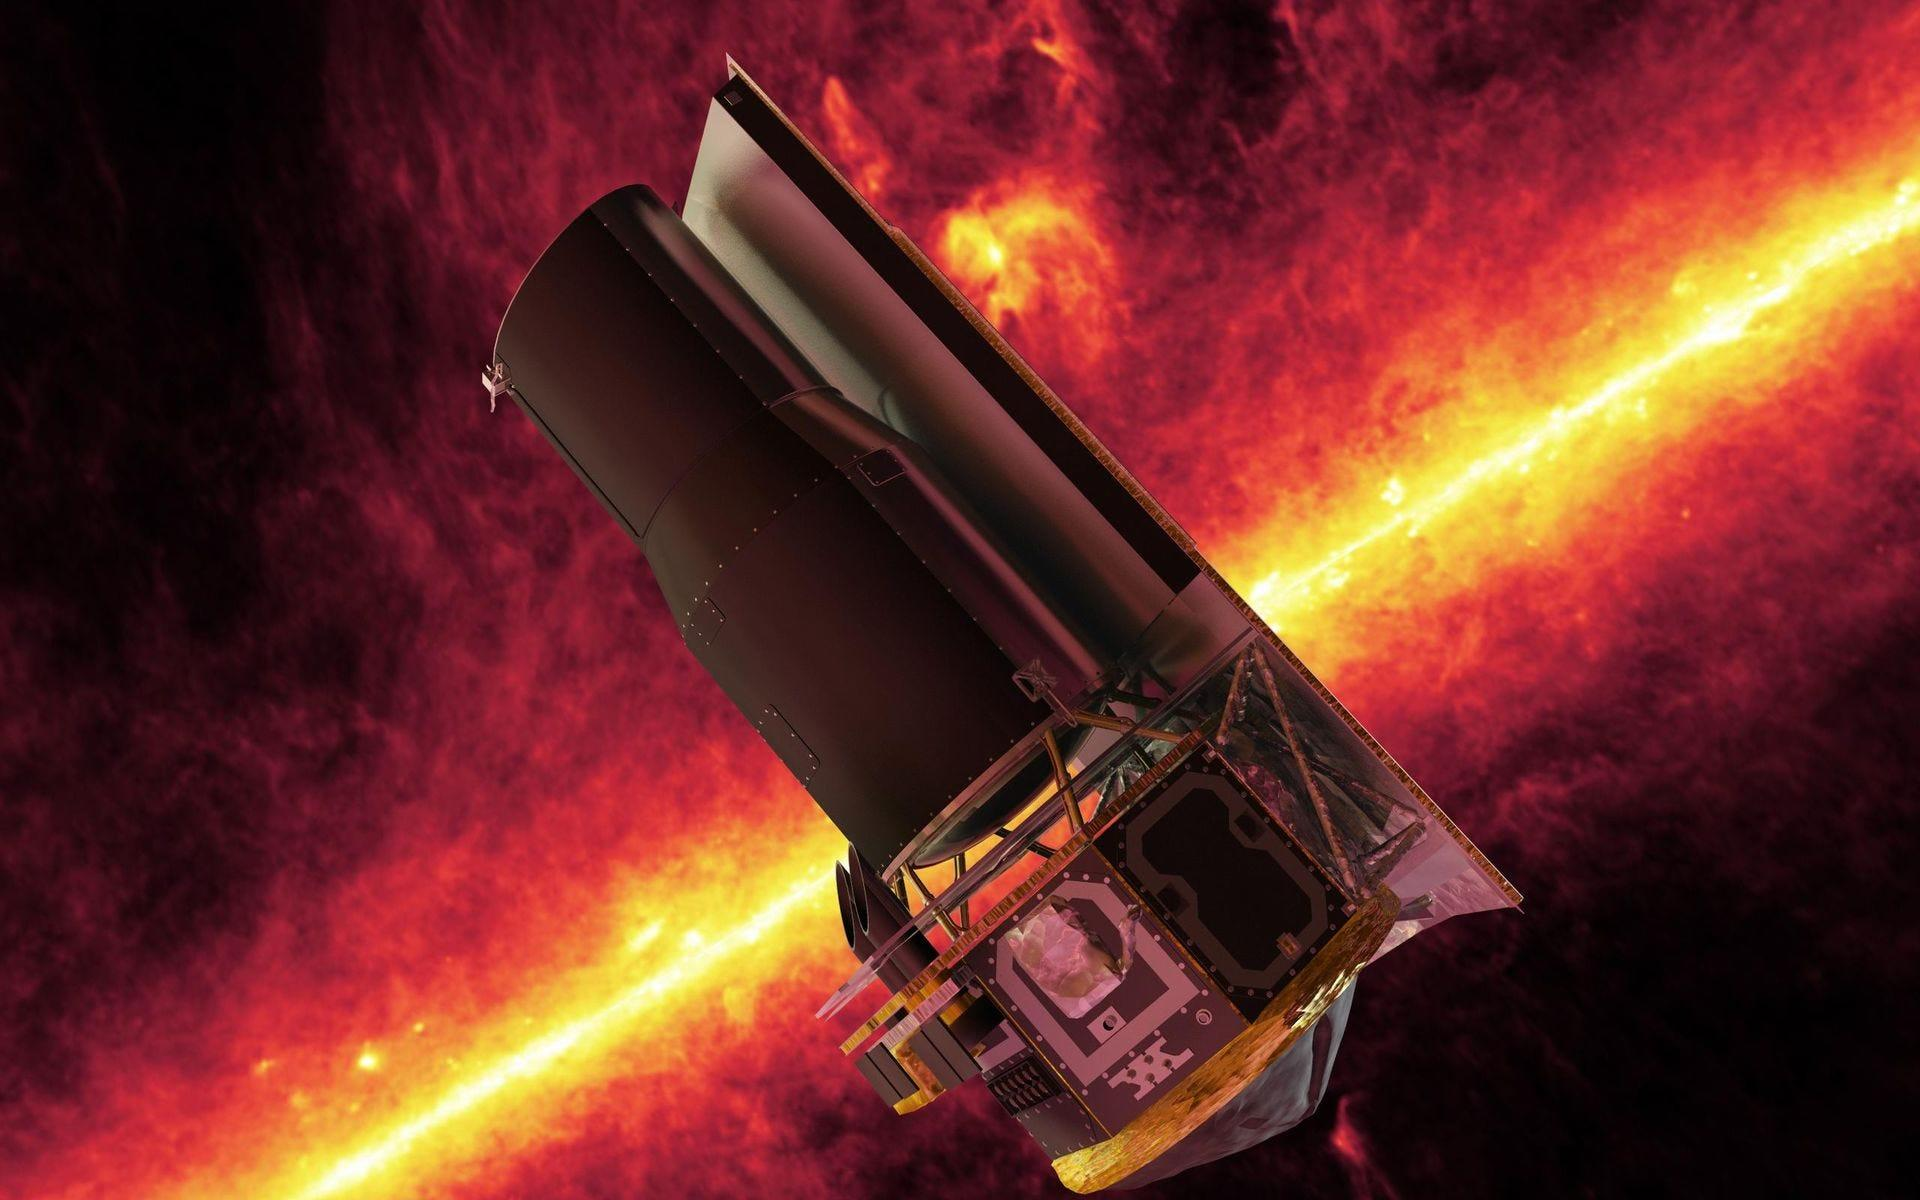 It 'lifted the cosmic veil on the universe:' NASA's Spitzer Space Telescope to be 'retired' on Thursday